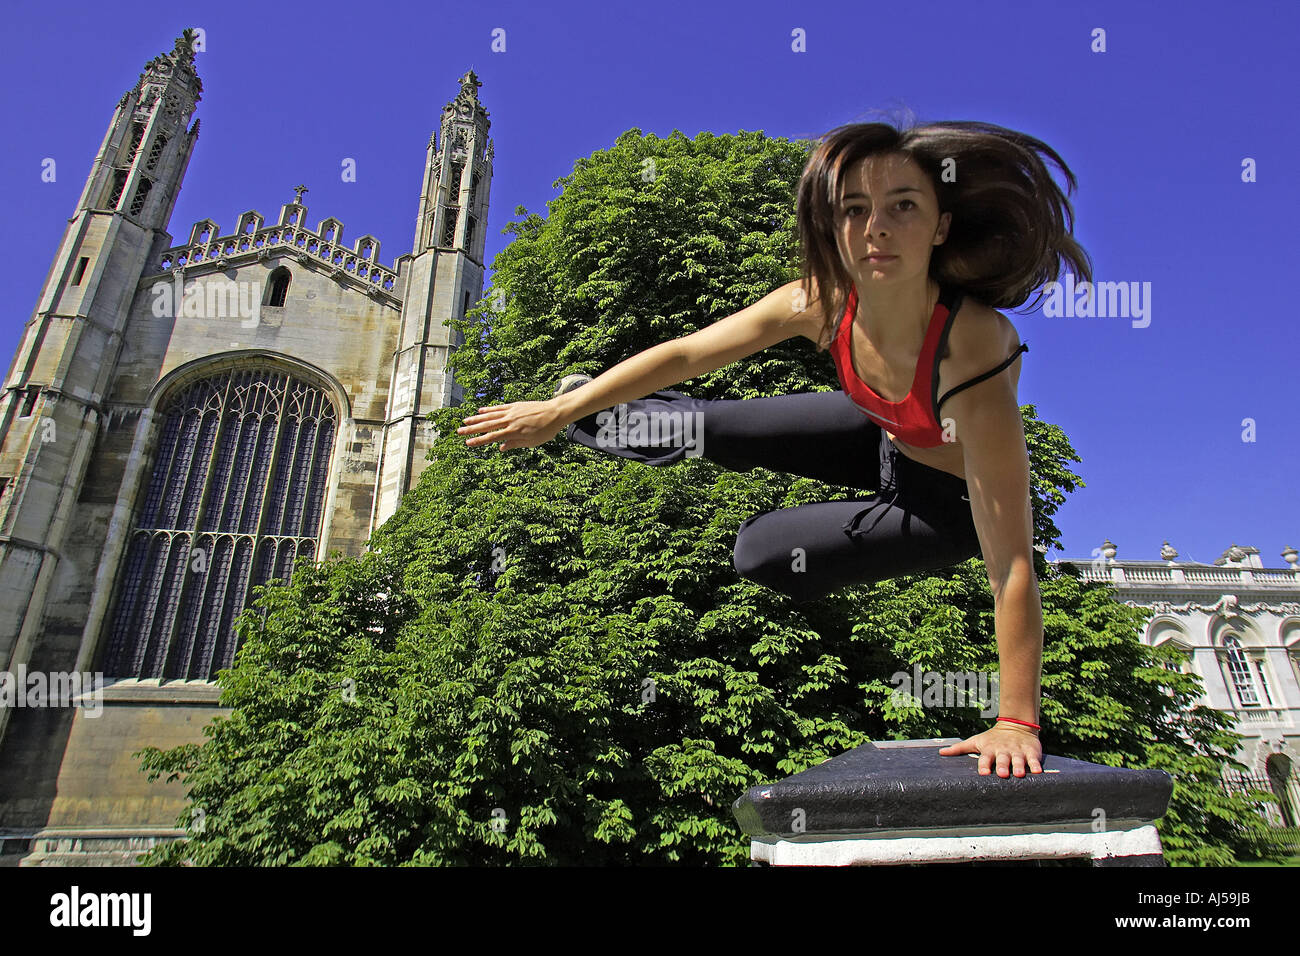 le parkour or free running - Stock Image